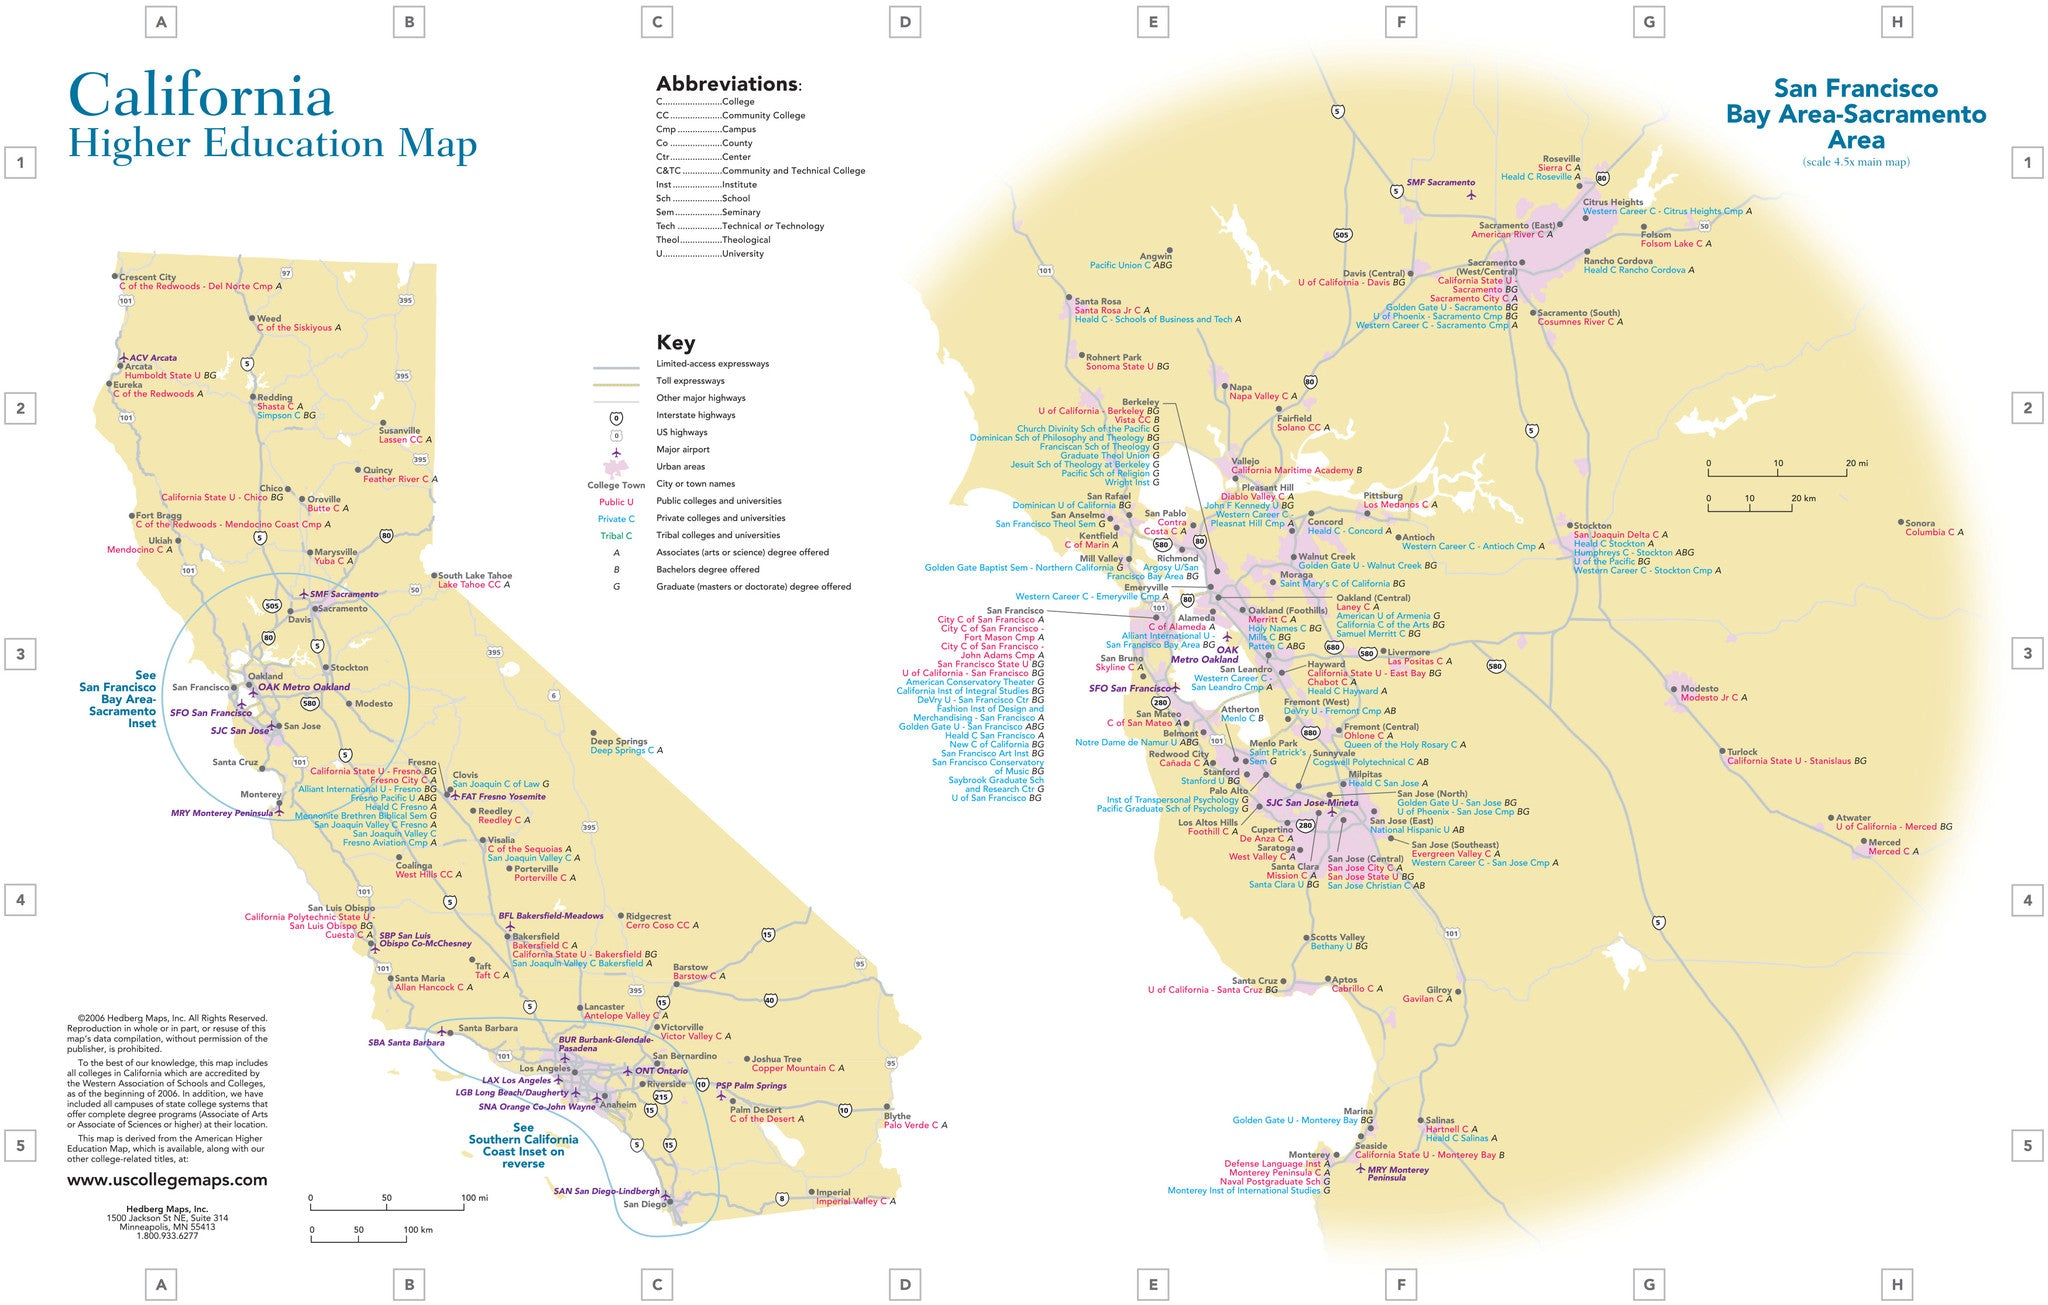 Universities And Colleges In California Map.U S Colleges Universities By State 11